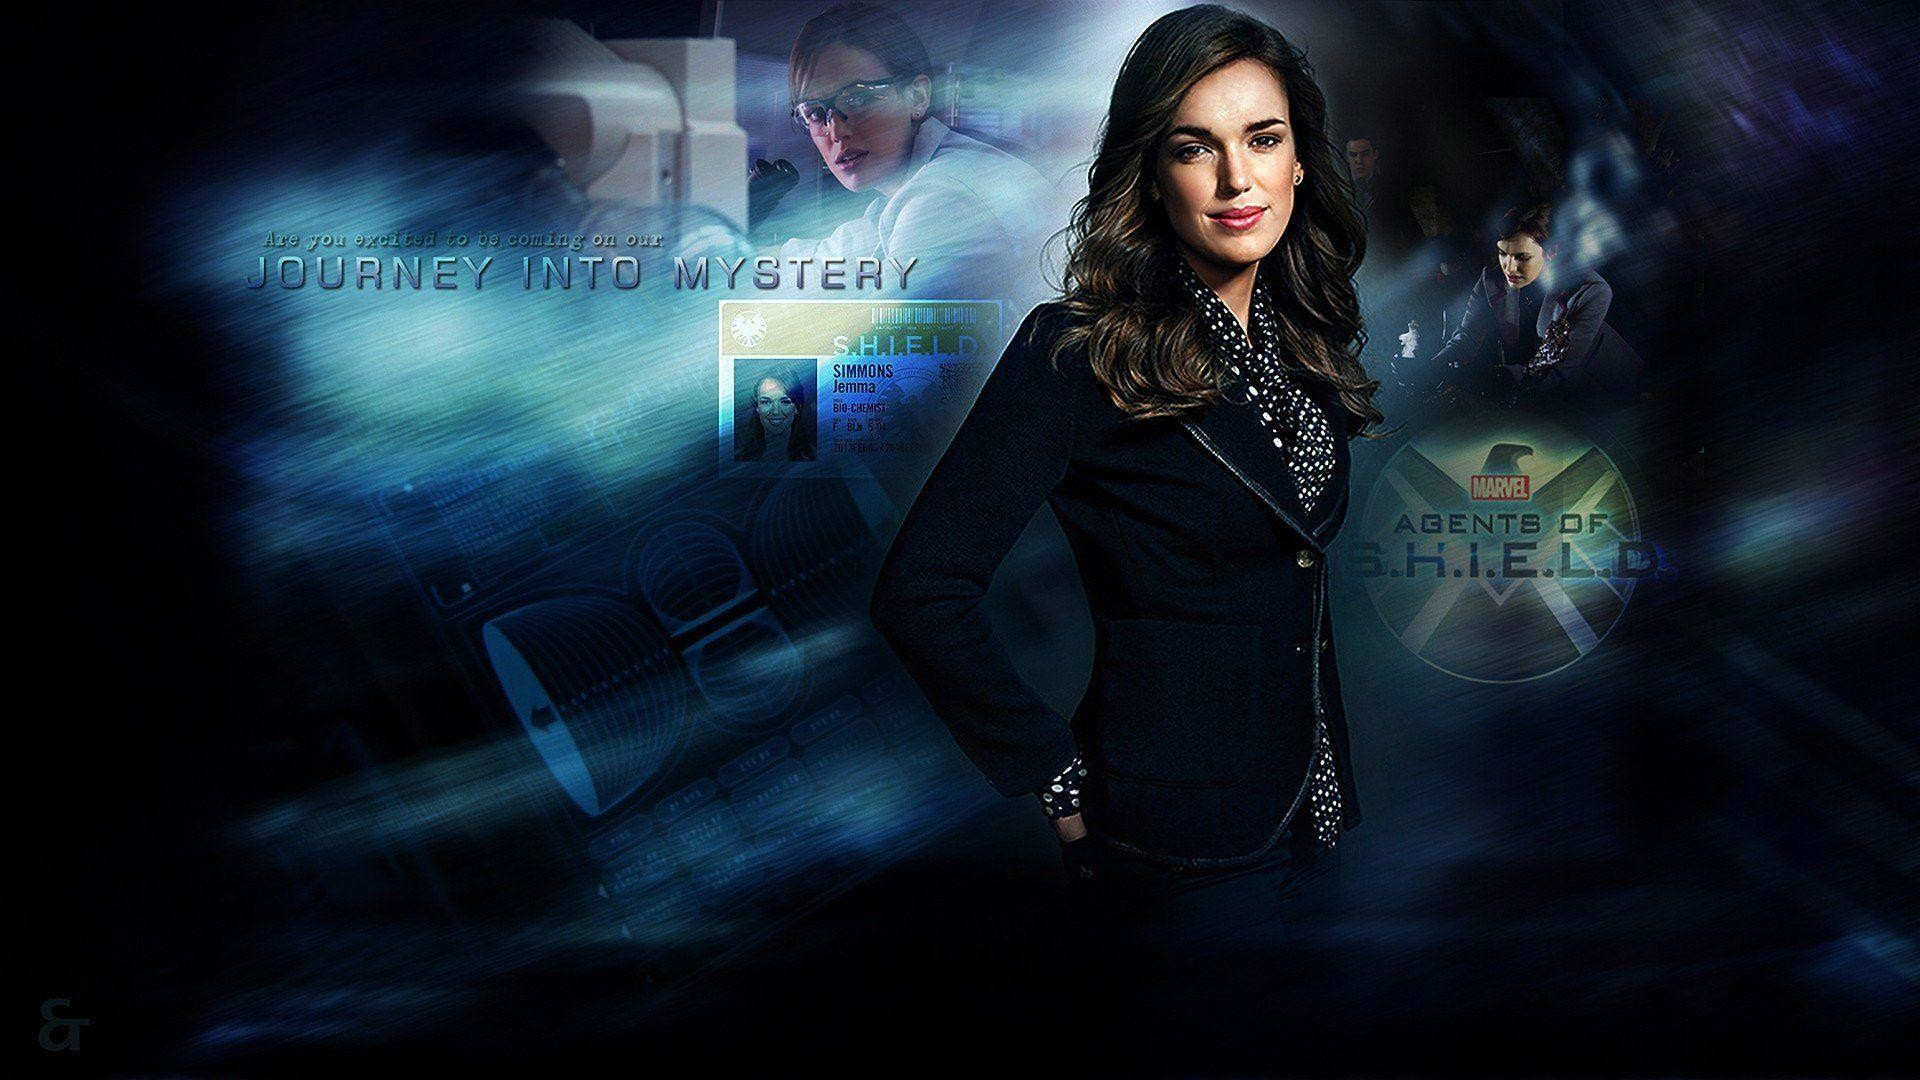 Agents of S.H.I.E.L.D wallpapers HD free Download for Desktop